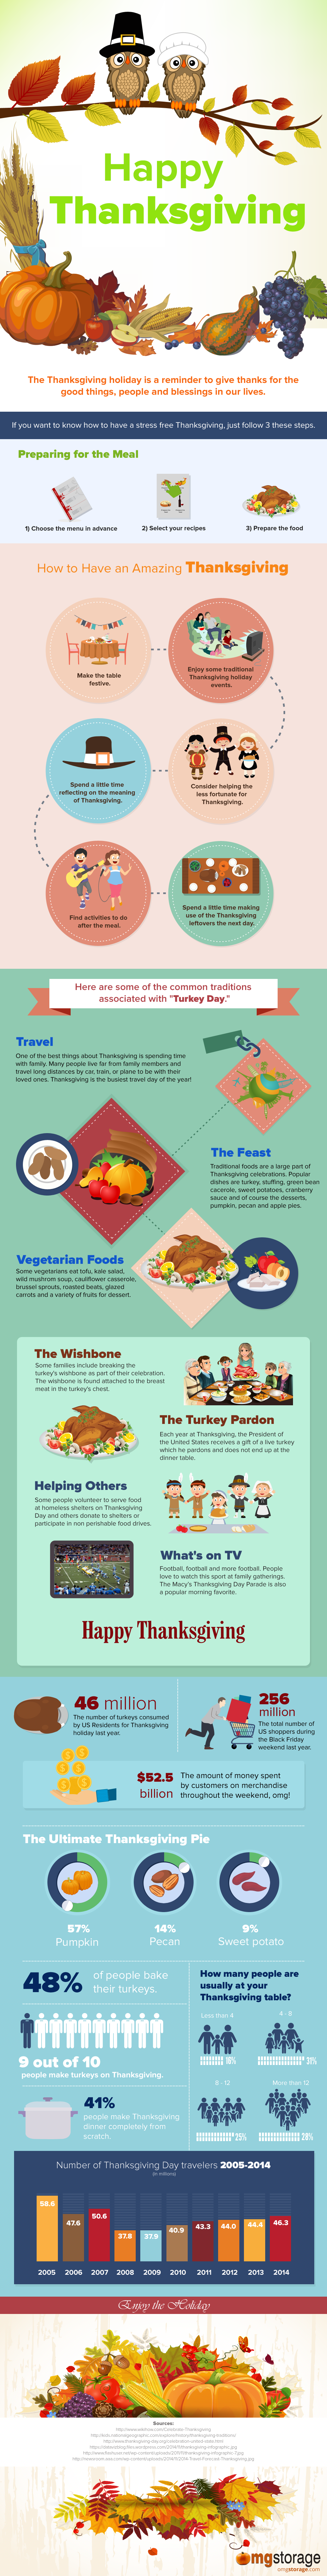 Happy Thanksgiving #infographic